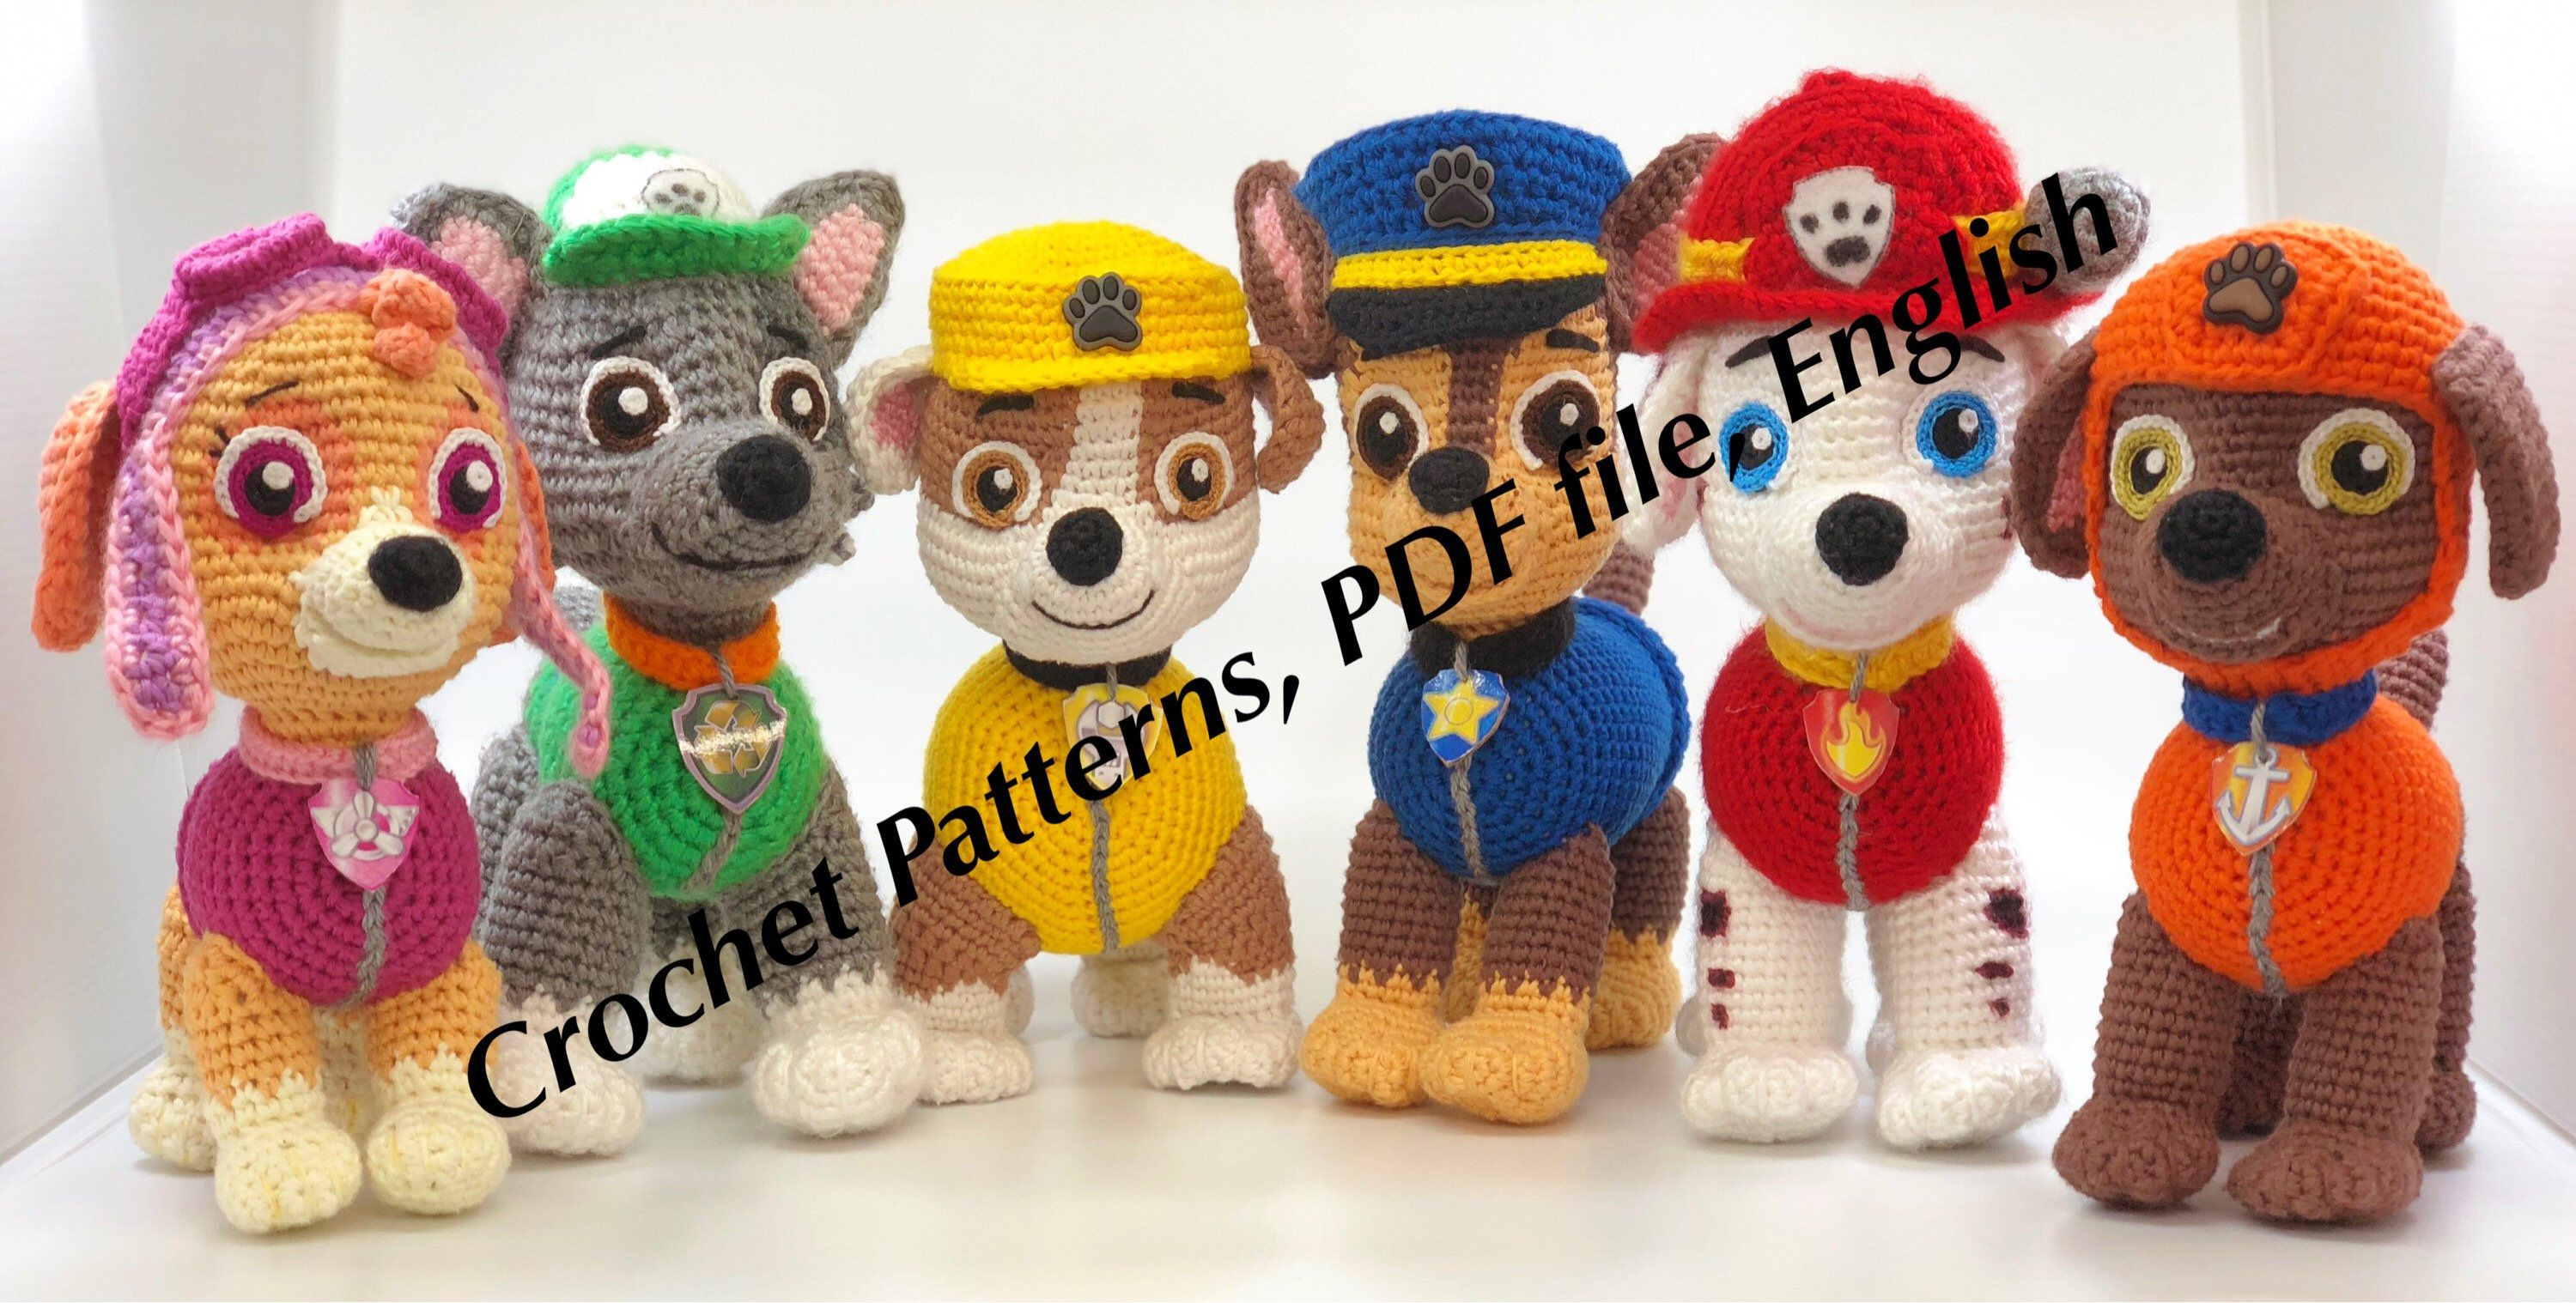 Amigurumisfanclub Kevin : Paw patrol toys and patterns: ryder cap'n turbot and six puppies